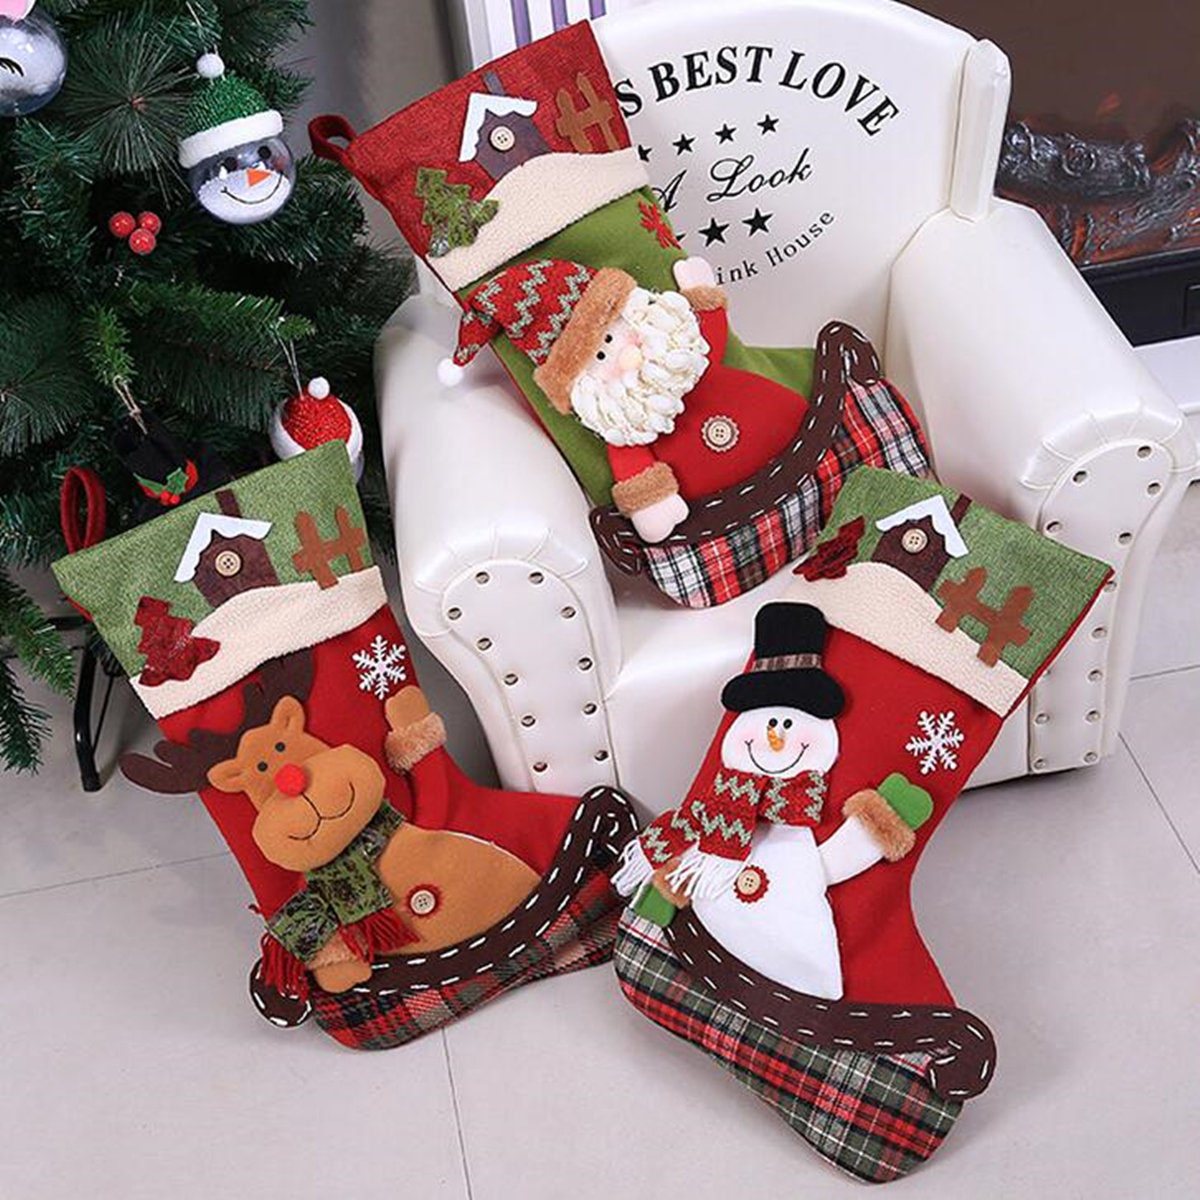 Christmas Tree Bags.Christmas Stockings Christmas Tree Decorations Gift Candy Bags